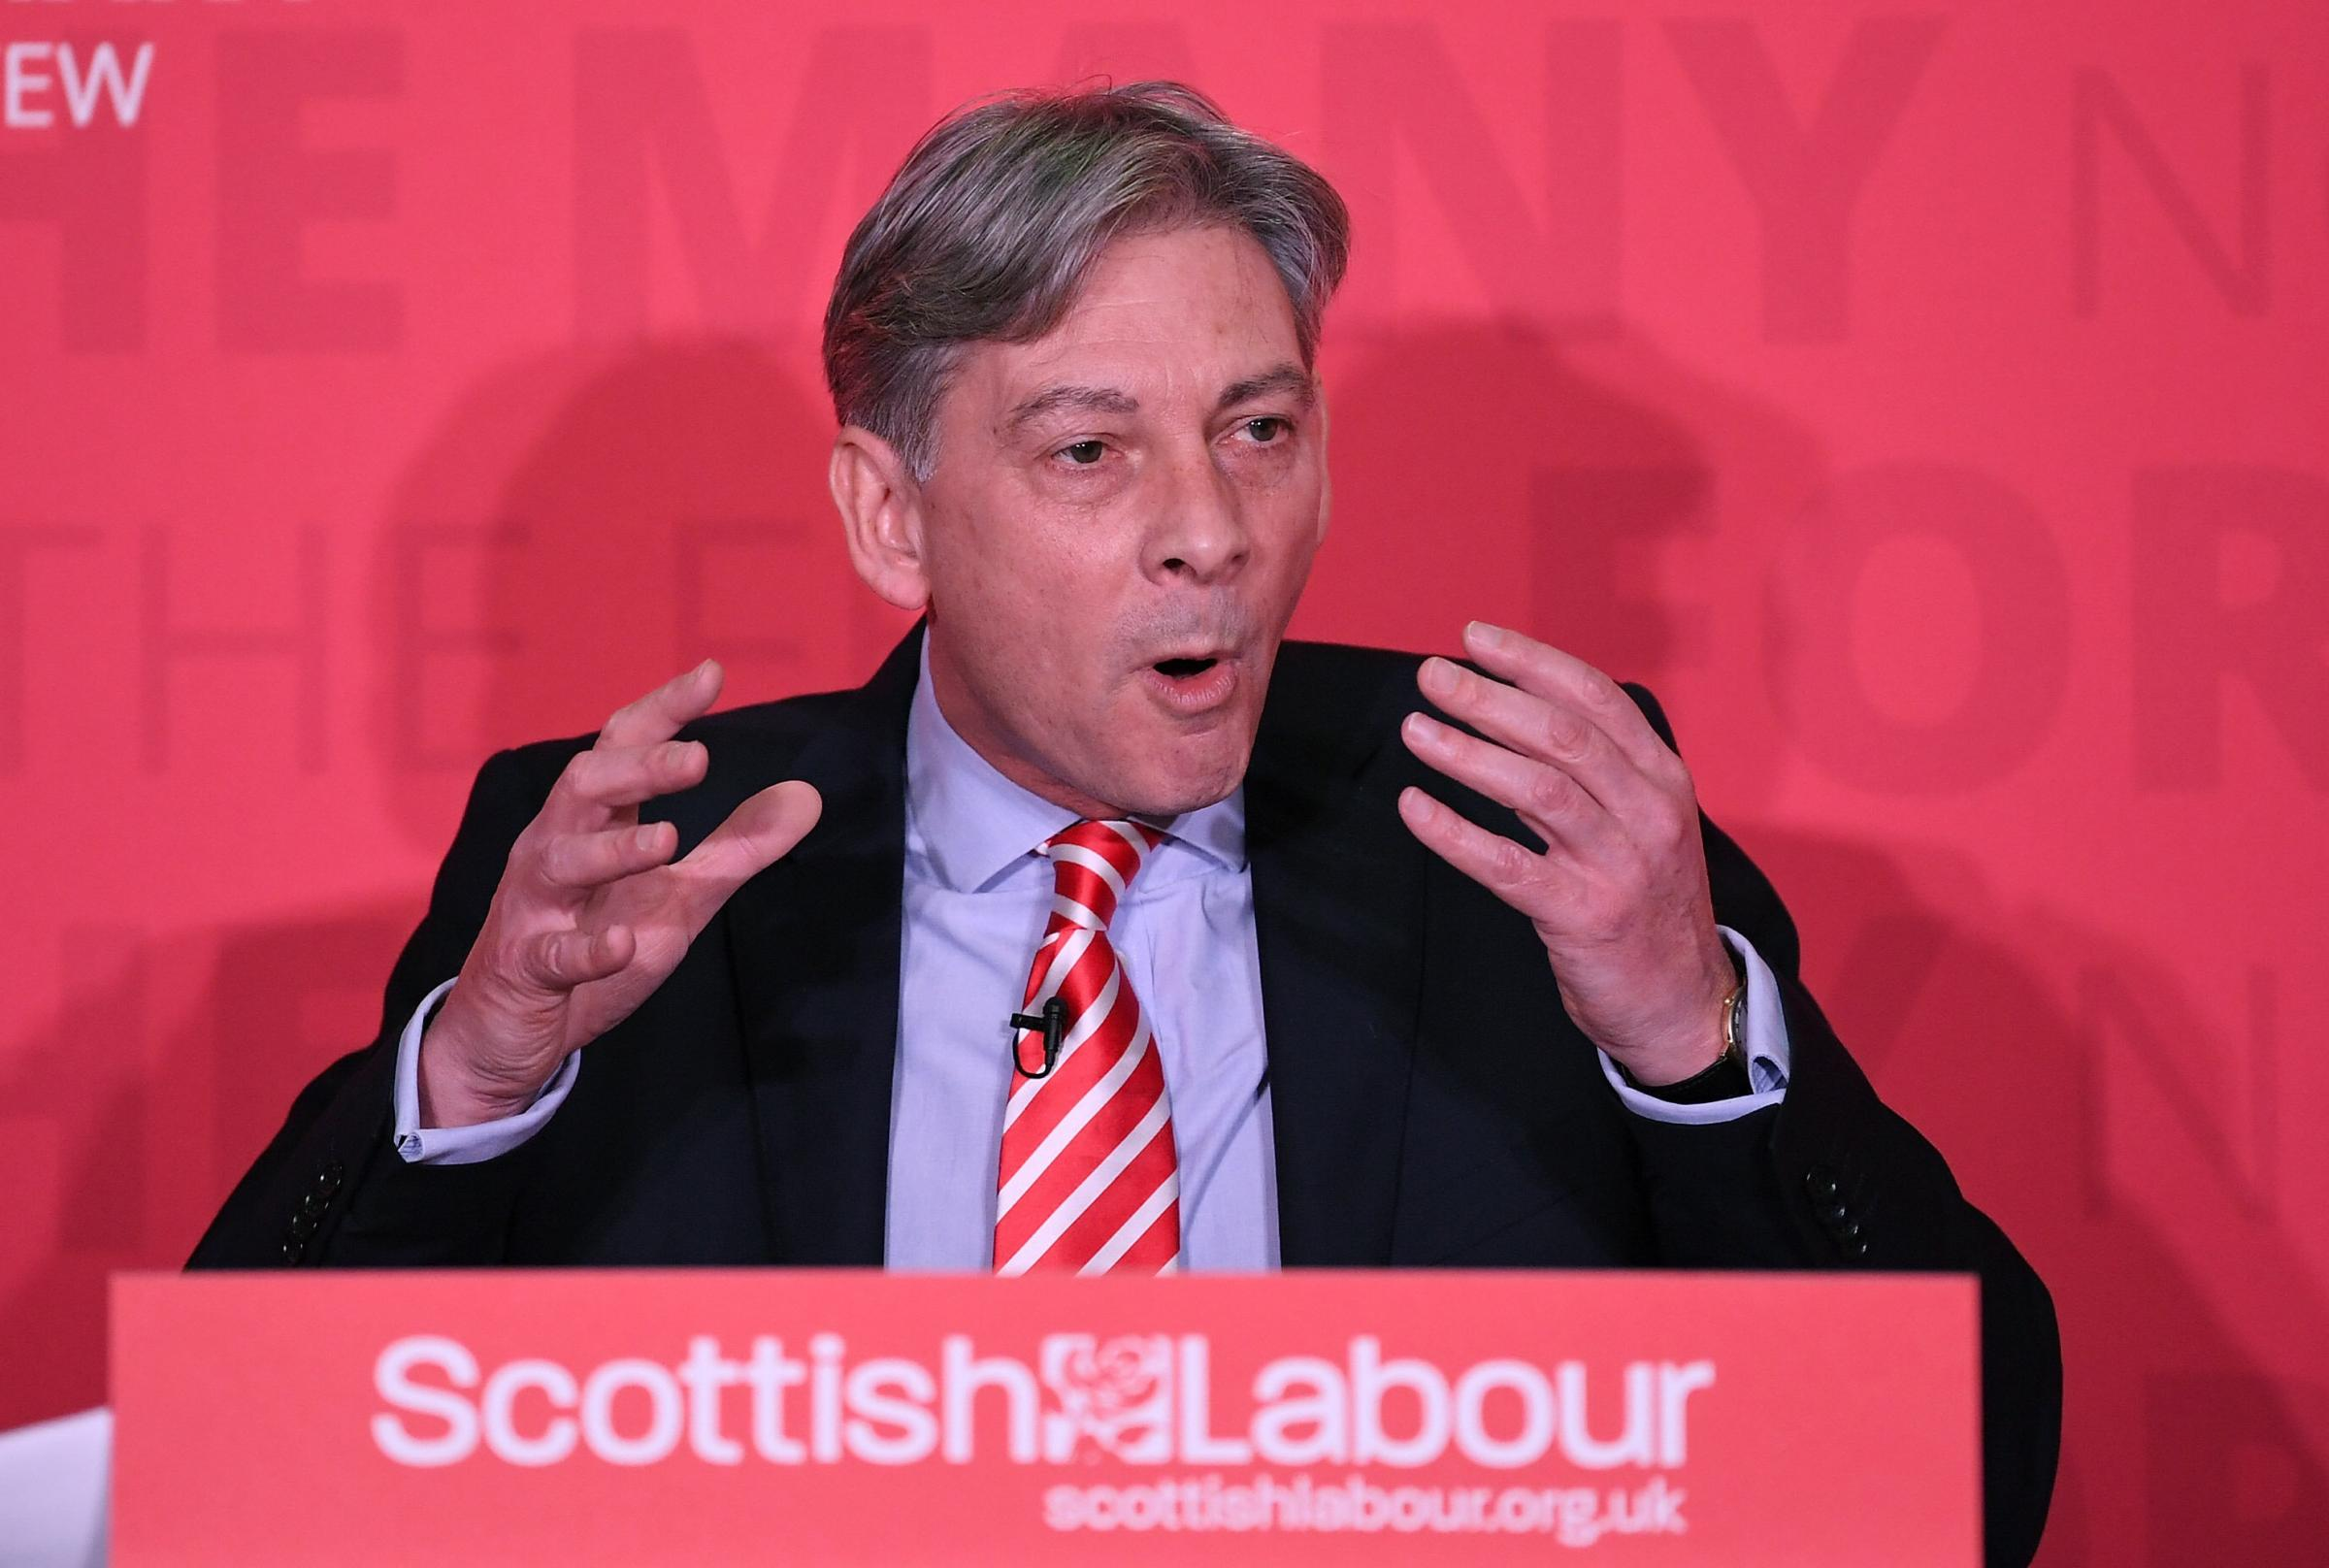 What exactly is the point of Scottish Labour party conferences or manifestos?